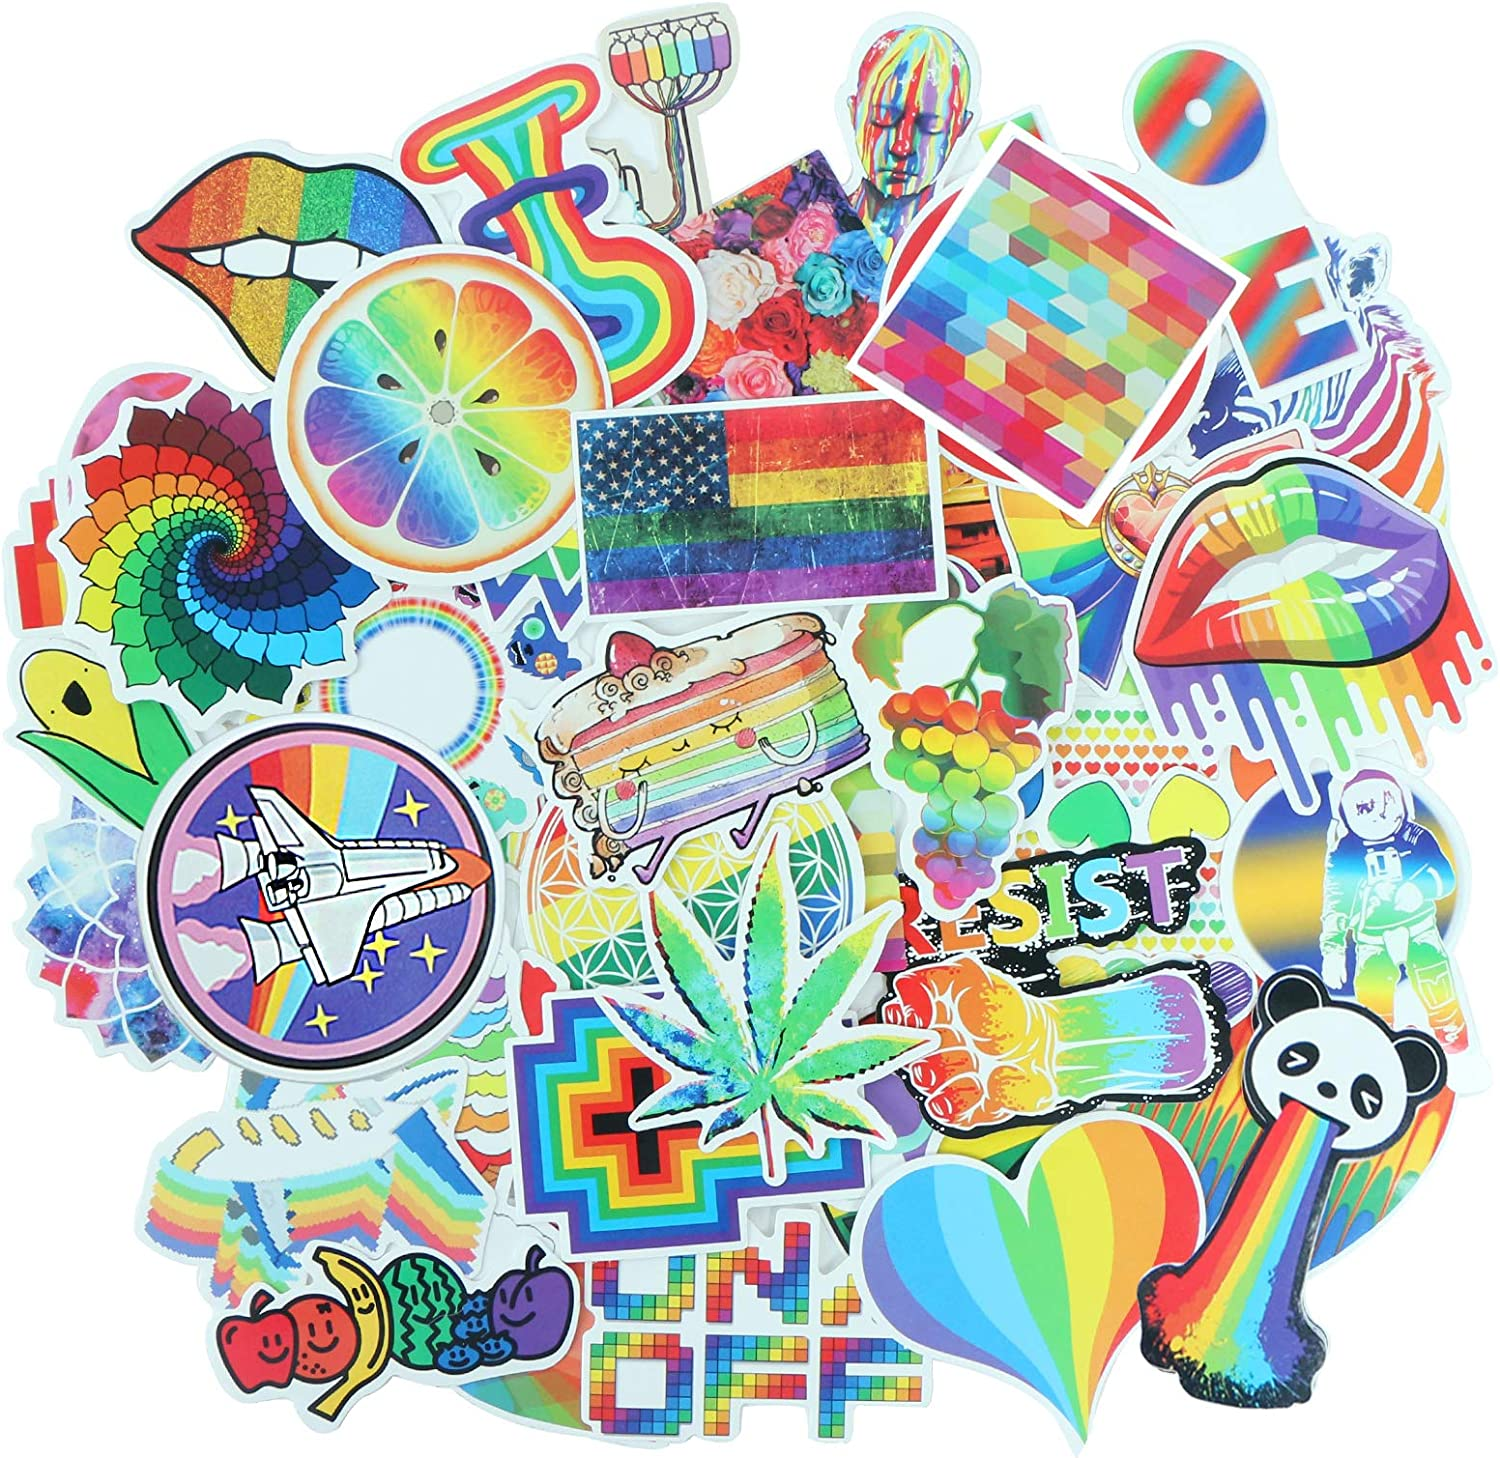 YAMIOW Waterproof Vinyl Stickers for Bike Notebook Suitcase Helmet Car Decorations Graffiti Stickers (60 pcs for Rainbow Style)